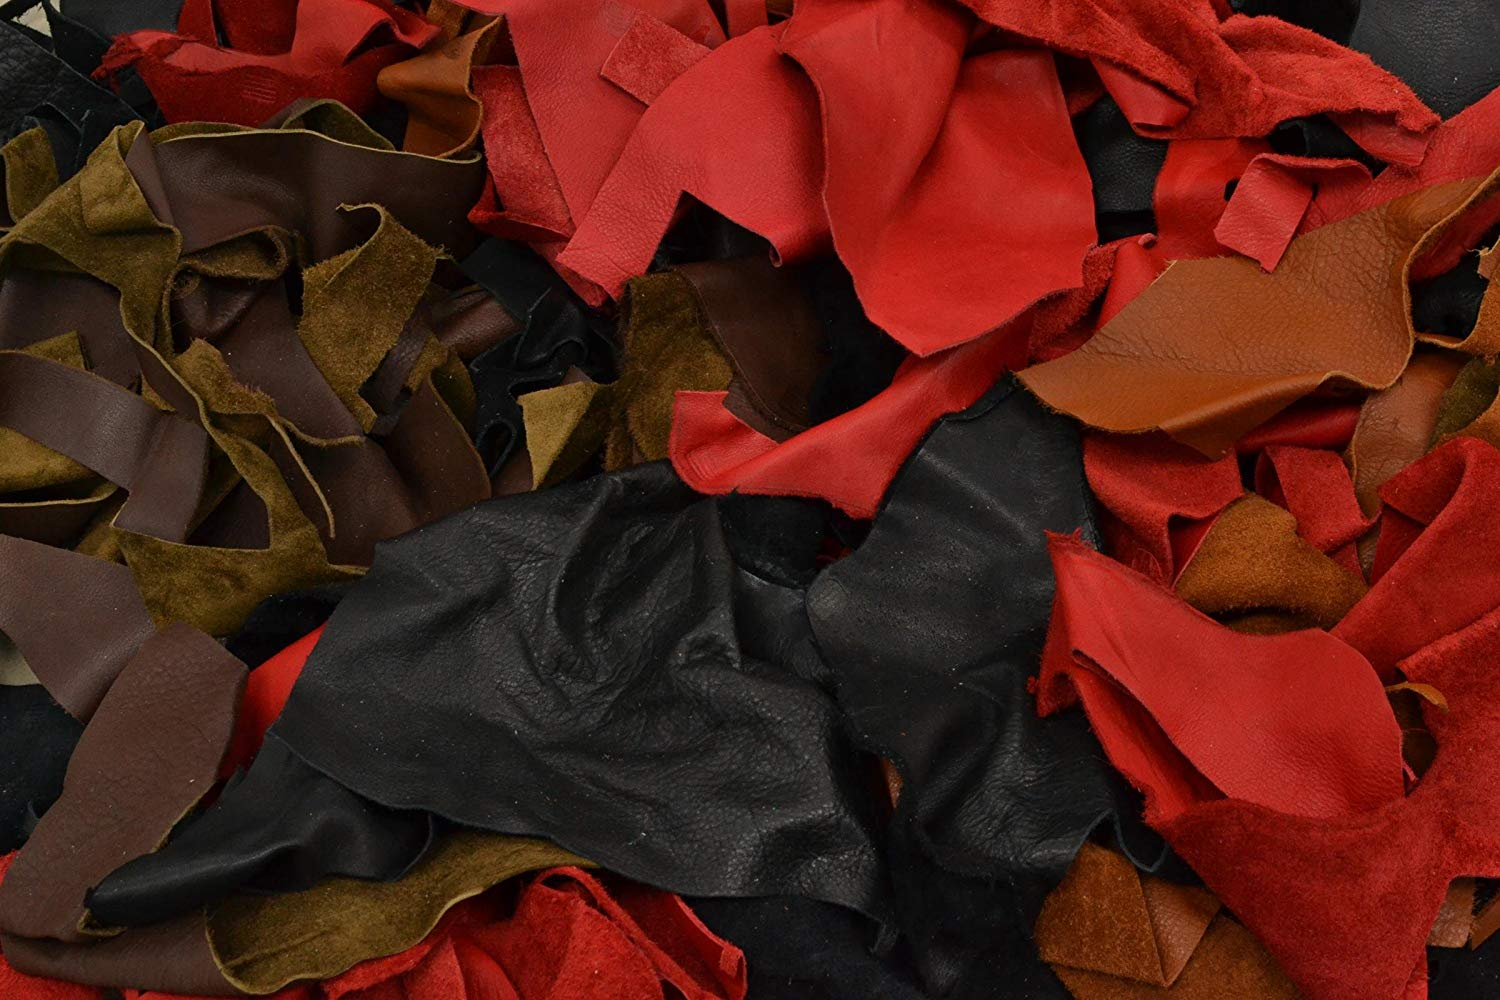 Cow Leather Scrap Black/Browns/Red Deer Tanned 3-4 oz Hide Pieces 1 Pound